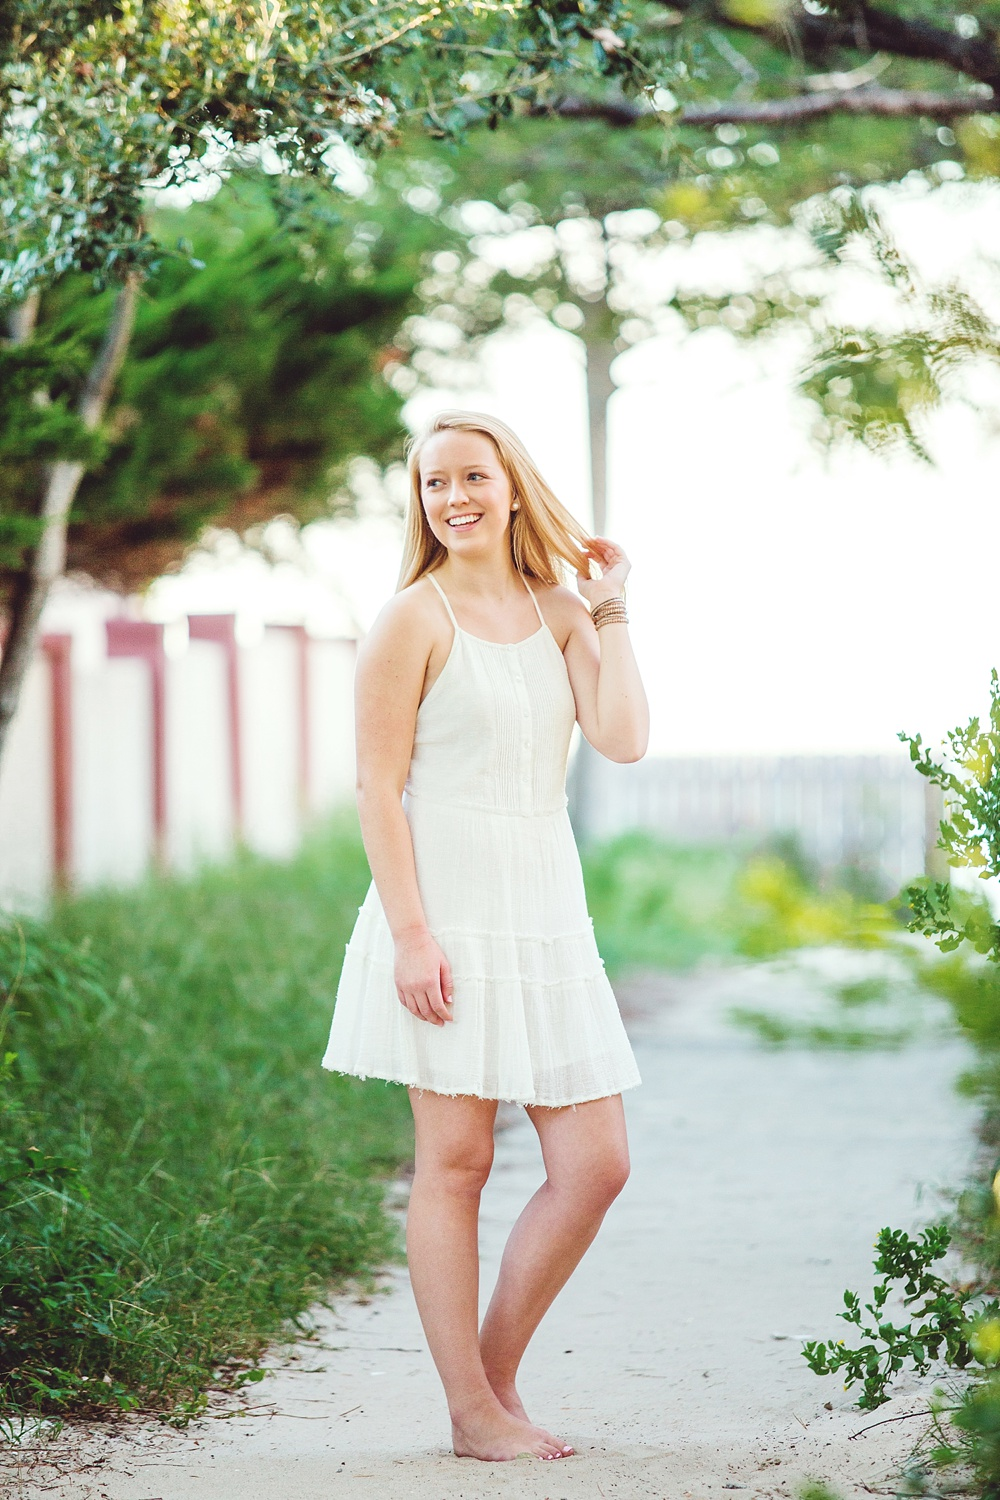 VirginiaBeachSeniorPhotography_AshleyLesterPhoto_0011.jpg